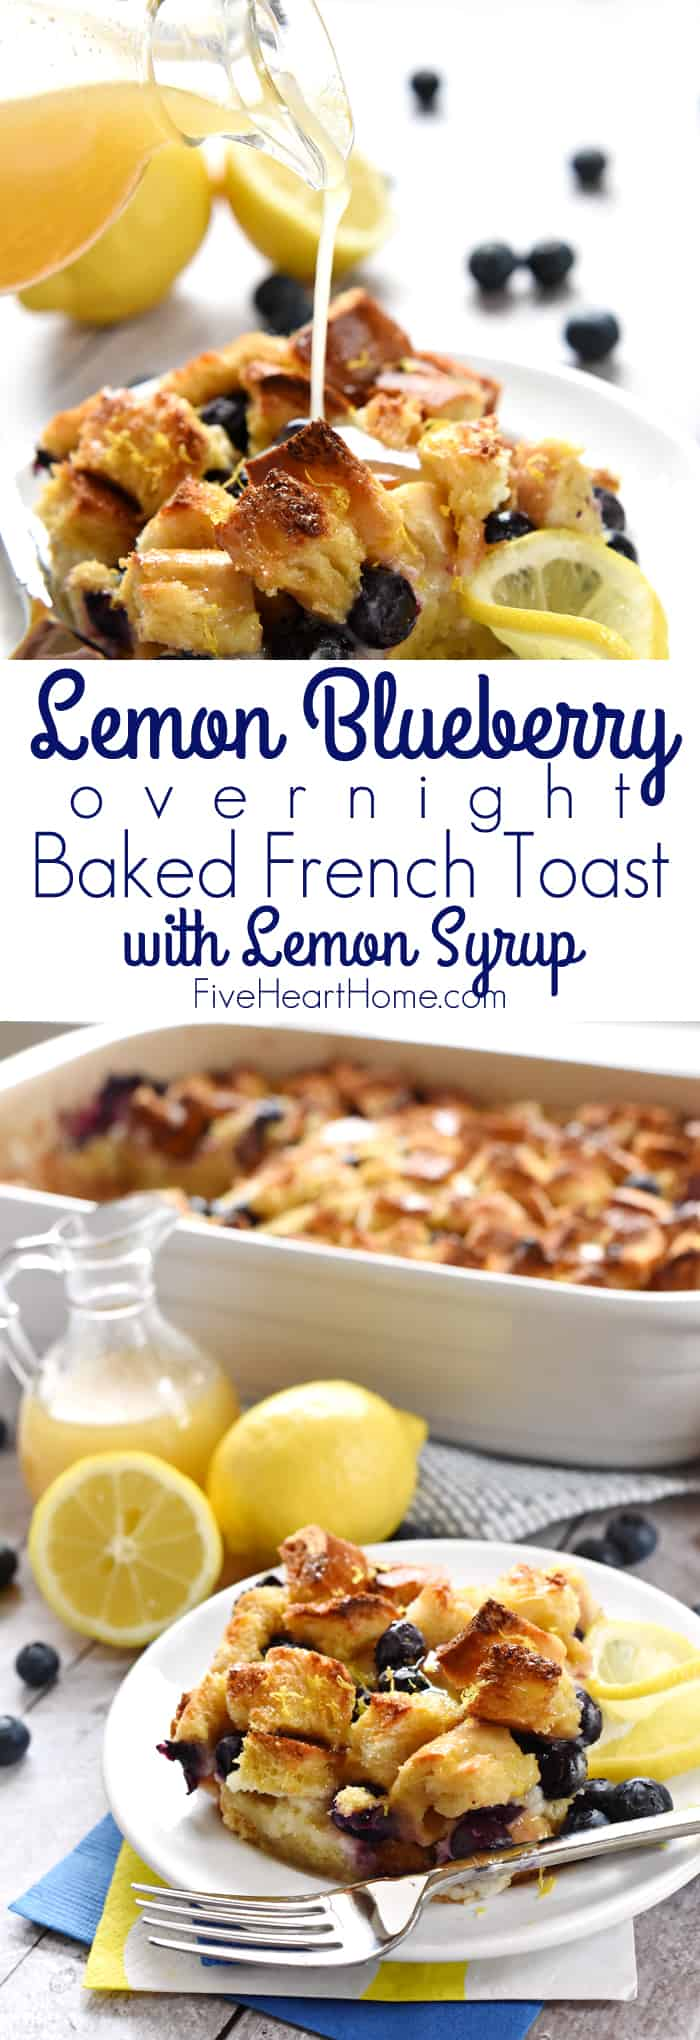 Lemon Blueberry Overnight Baked French Toast with Lemon Syrup Collage with Text Overlay